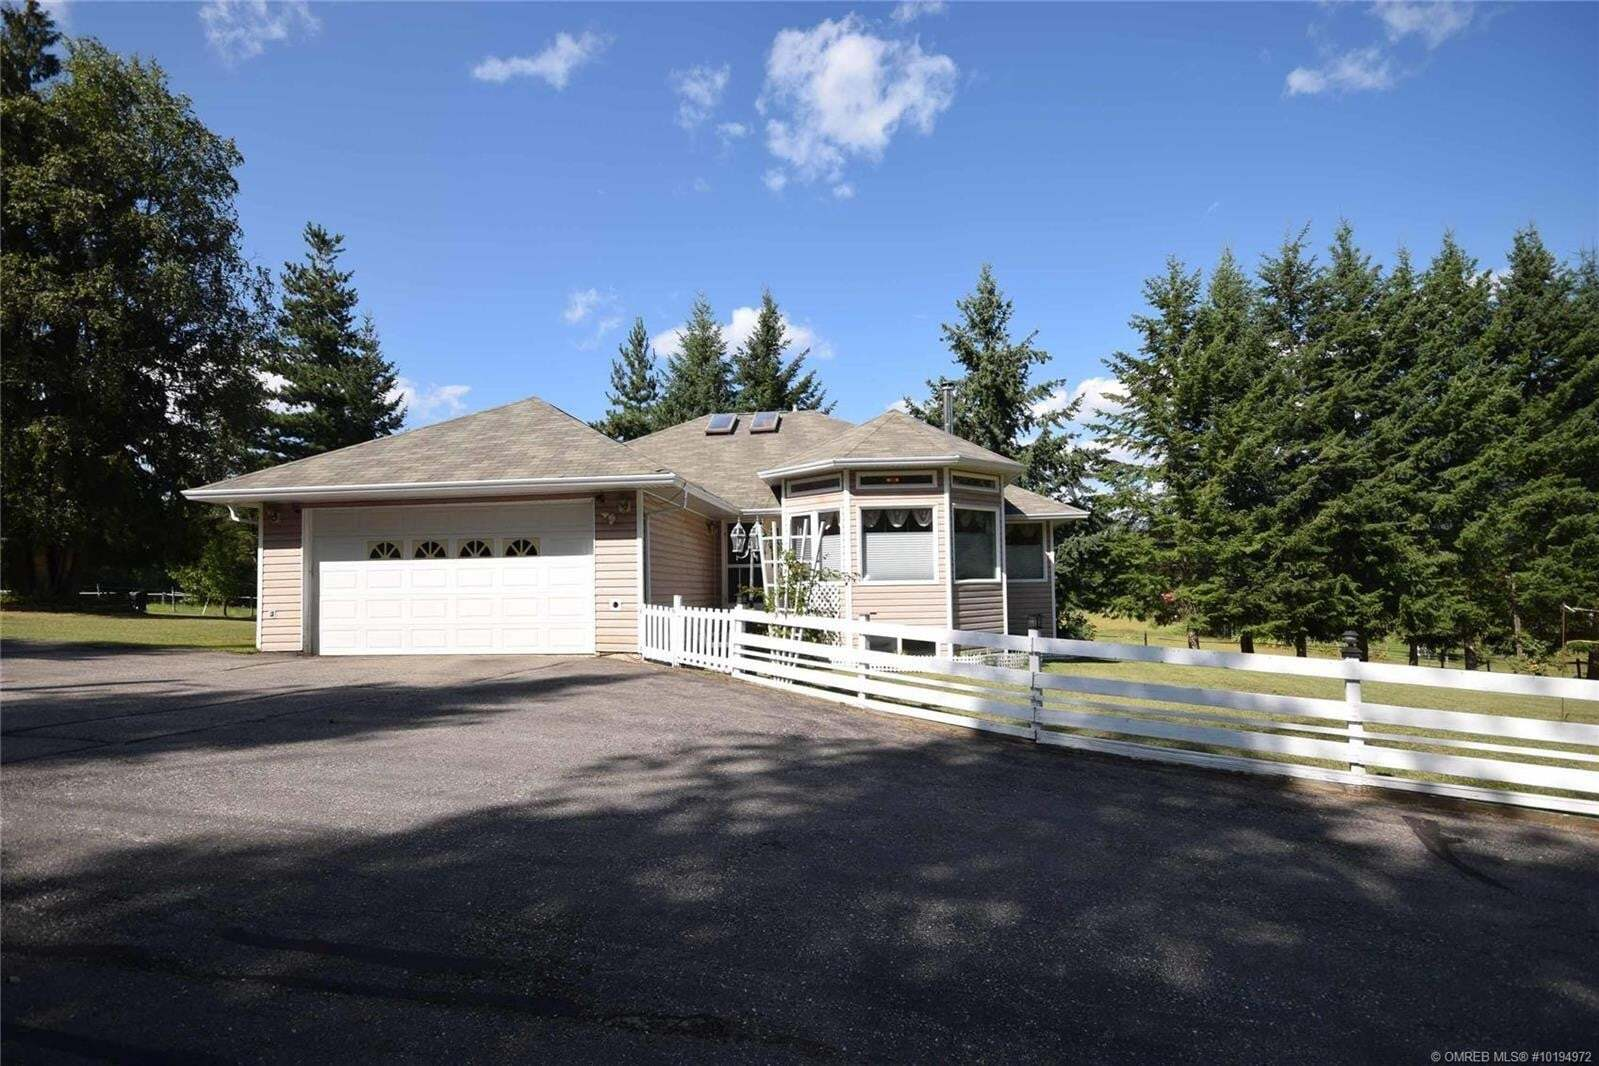 House for sale at 701 97 B Hy Salmon Arm British Columbia - MLS: 10194972